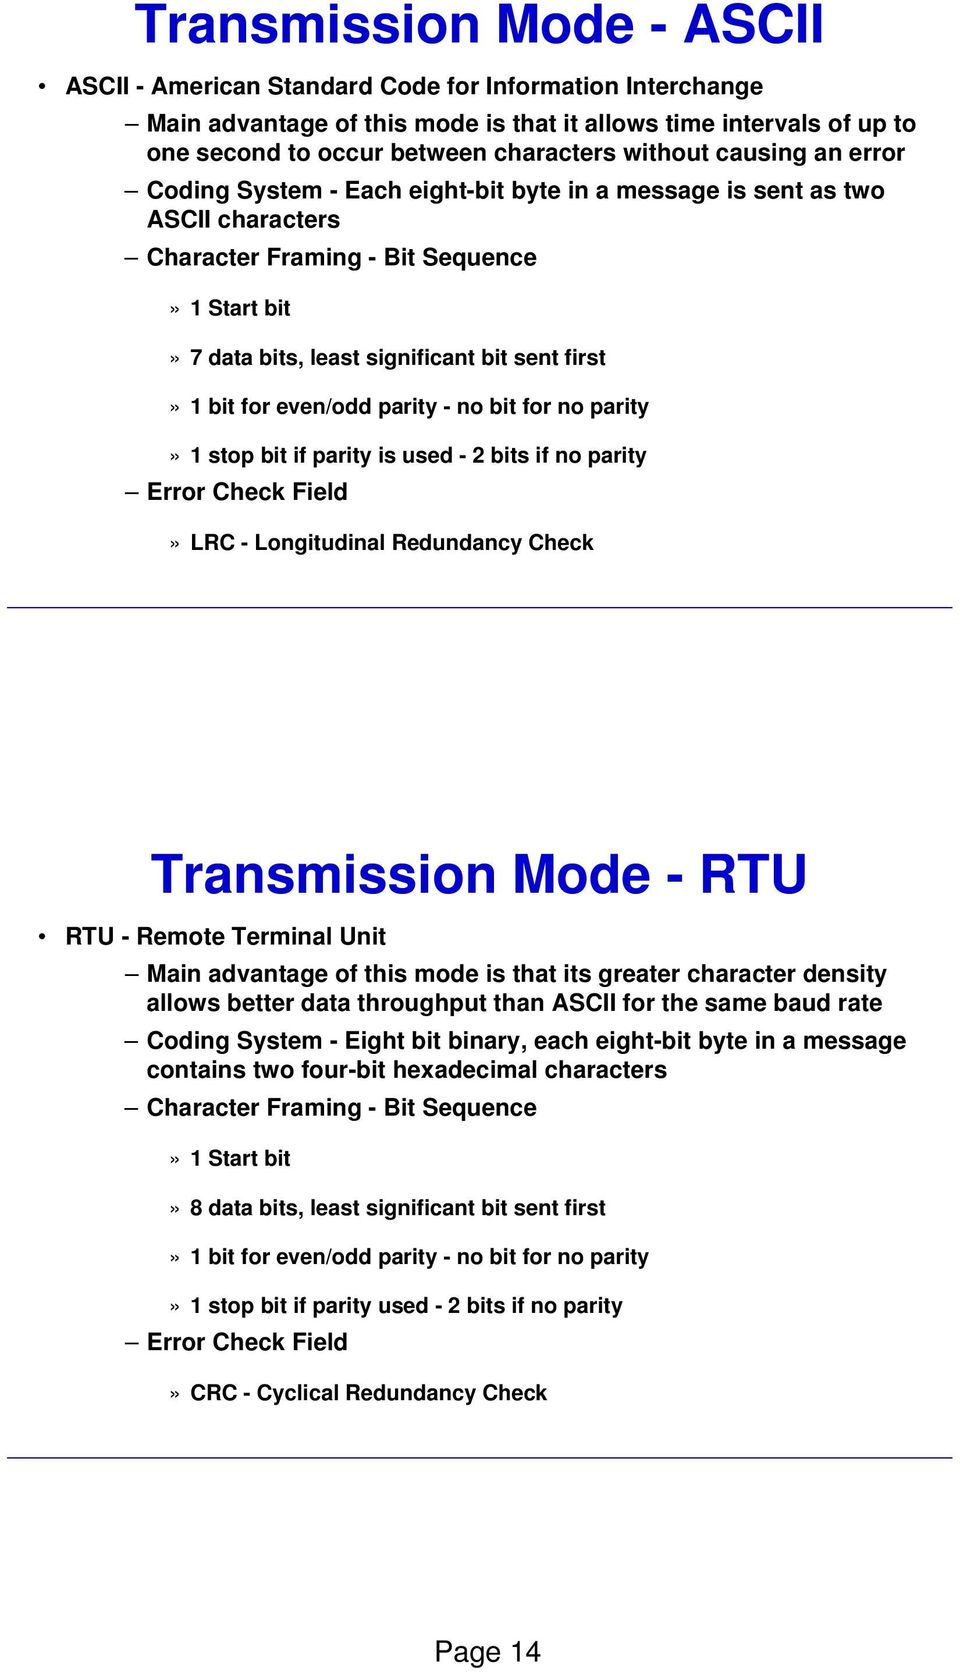 1 bit for even/odd parity - no bit for no parity» 1 stop bit if parity is used - 2 bits if no parity Error Check Field» LRC - Longitudinal Redundancy Check Transmission Mode - RTU RTU - Remote